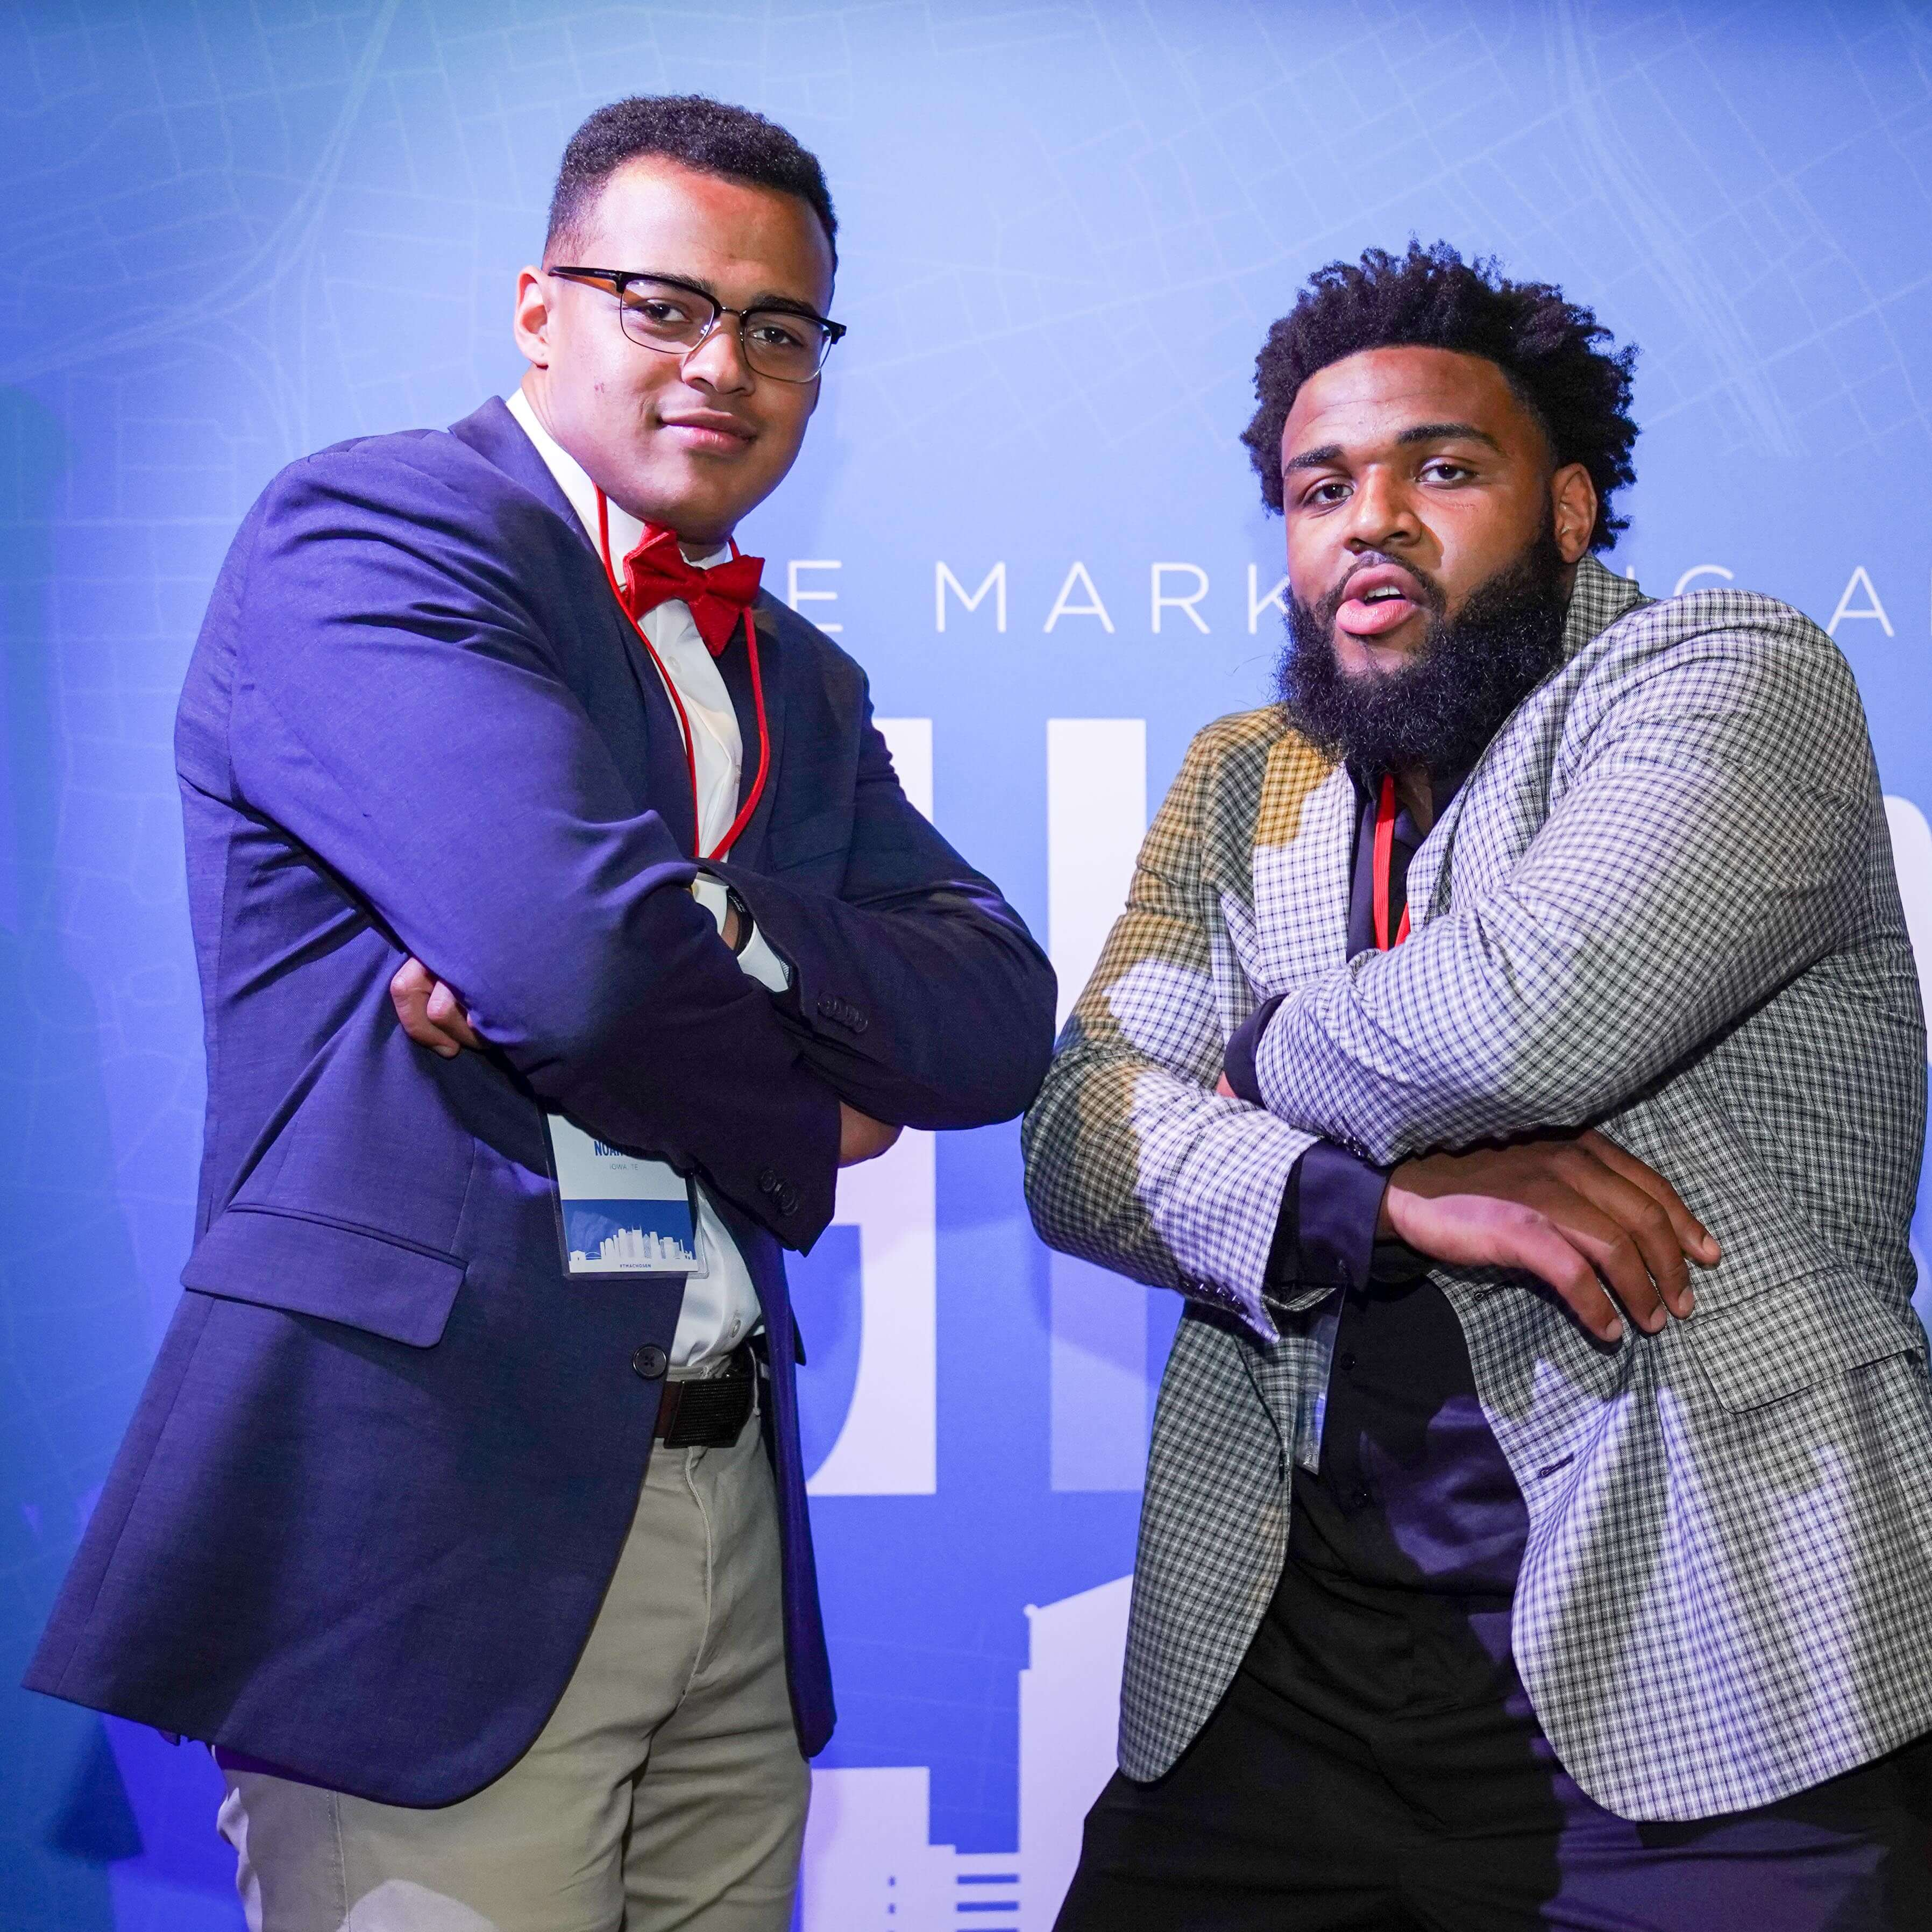 CHOSEN provided the players with expertise around building their own brand and navigating the endorsement business – just as they enter the world of professional sports.